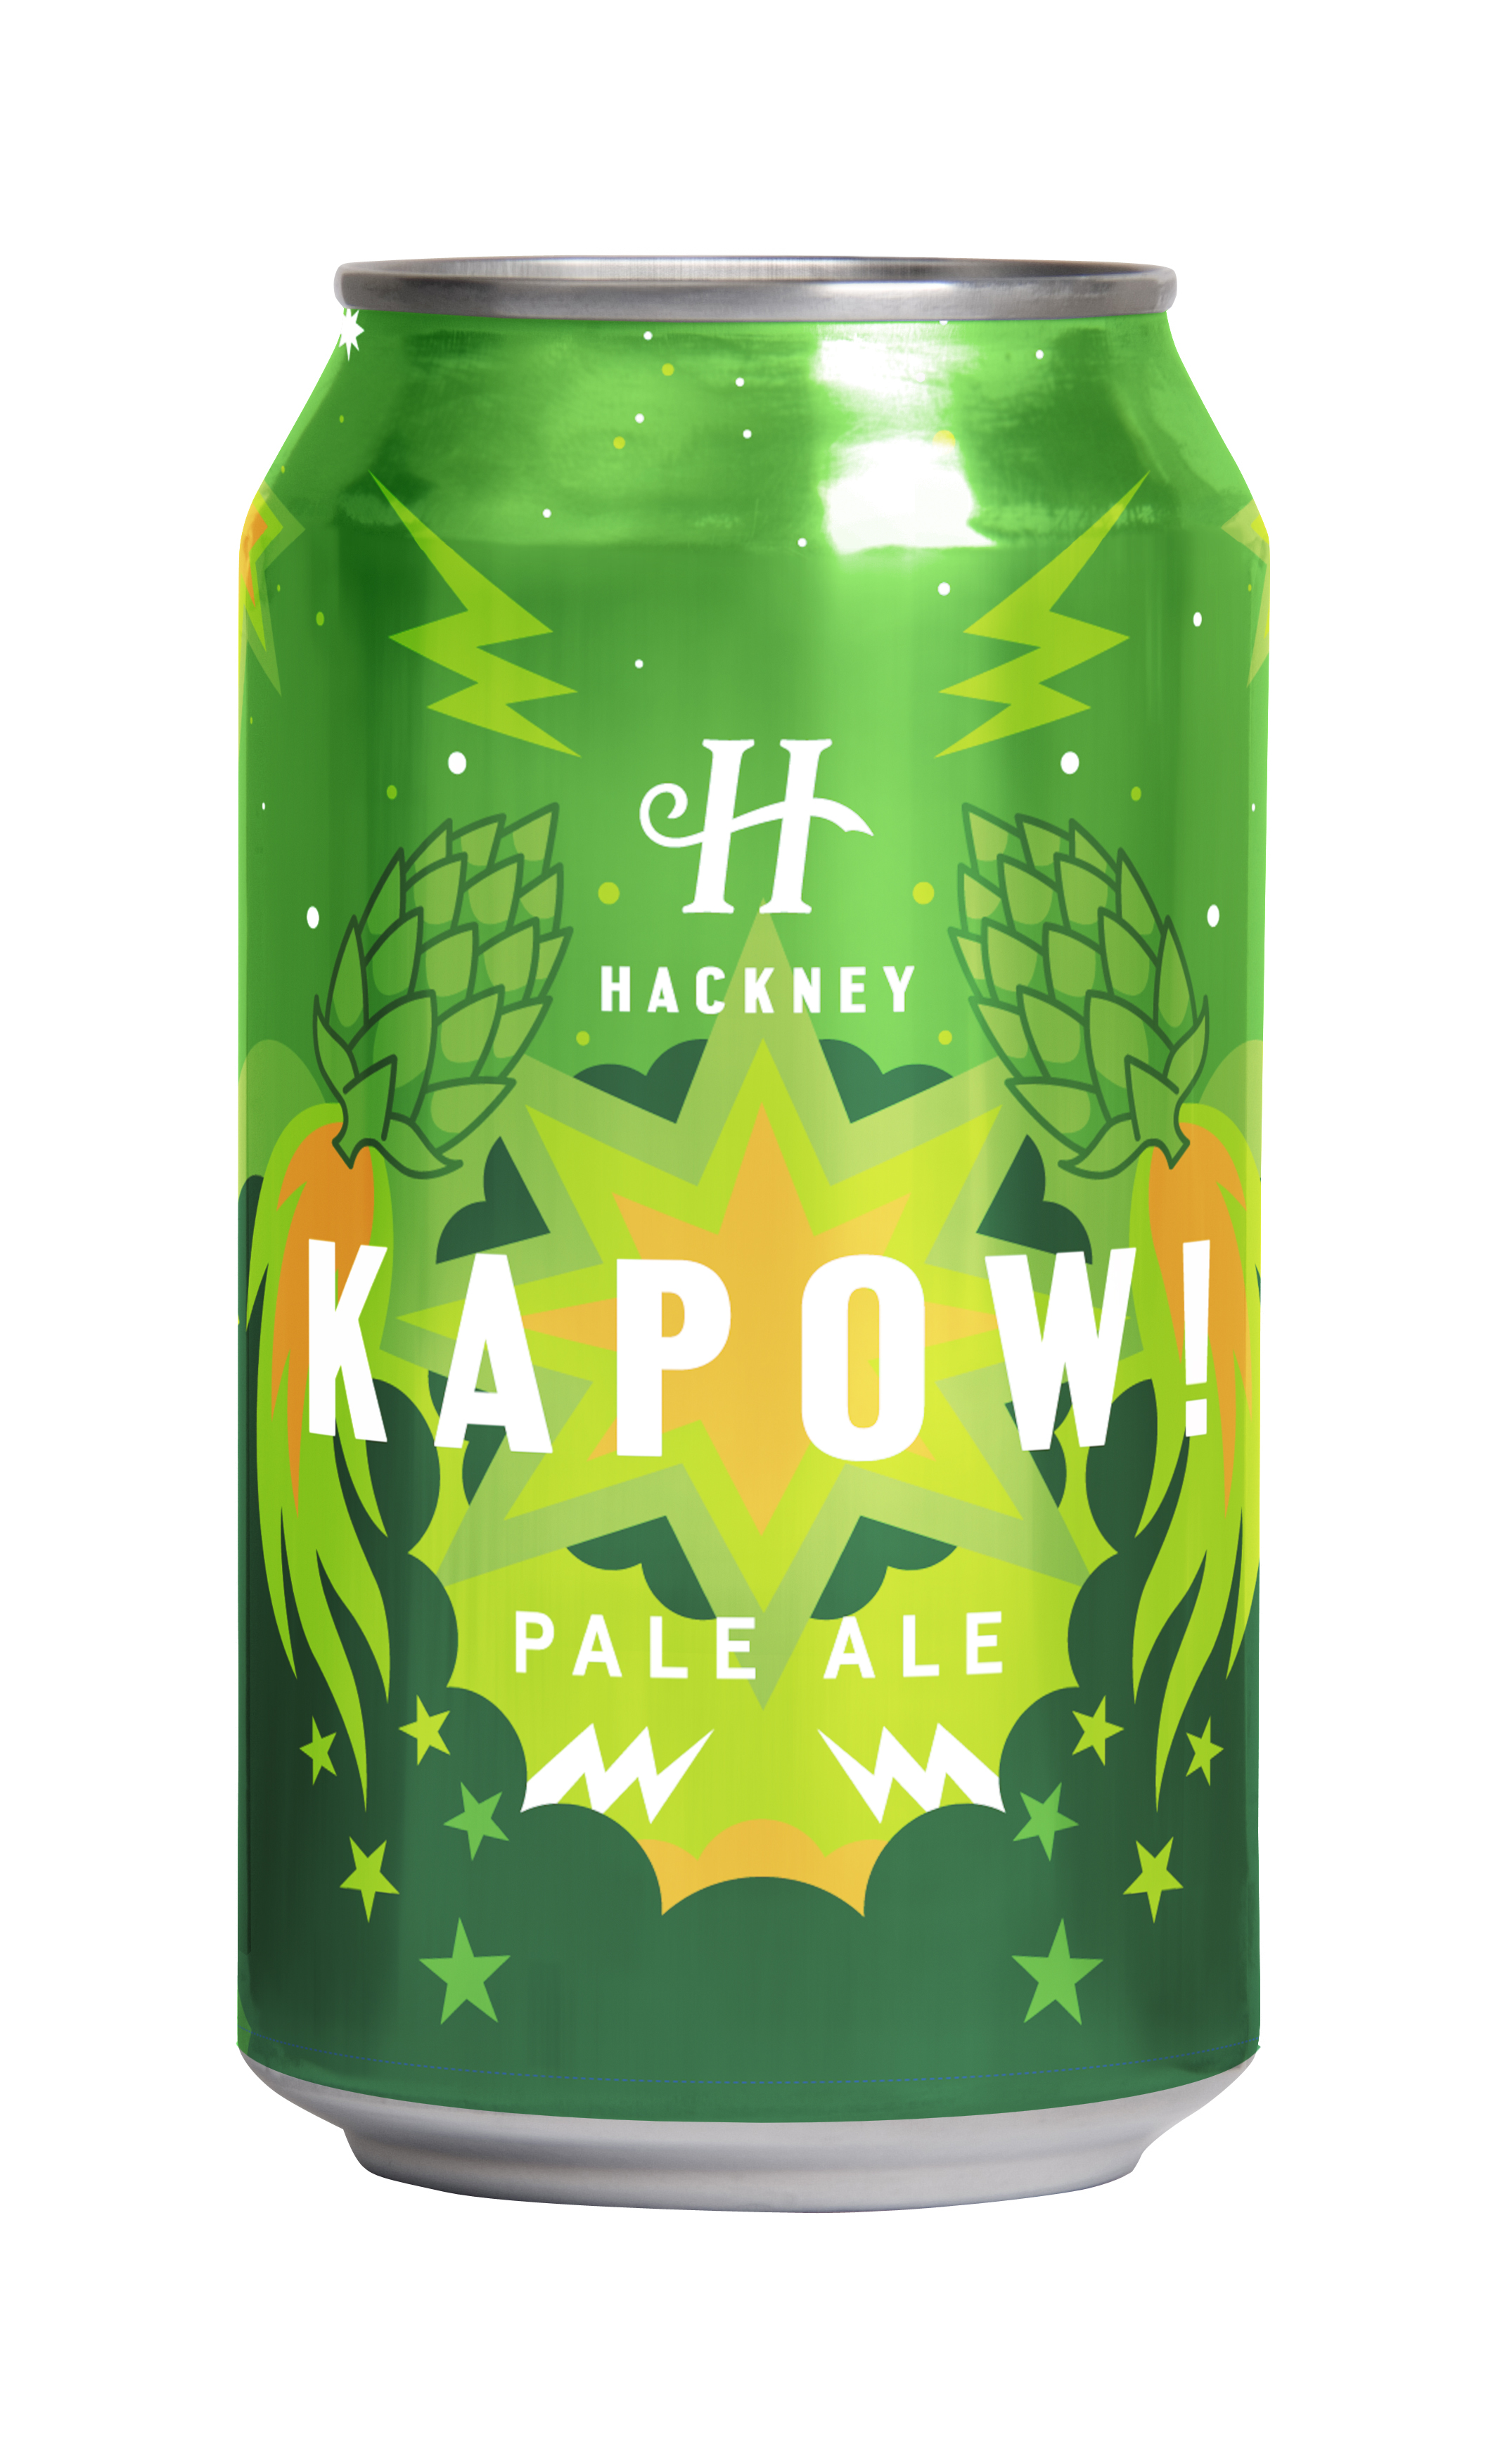 KAPOW! - Nothing quite pairs up better over fireworks night than a cold fresh Kapow! This little treat of tropical fruits is a juicy, dry hopped pale ale. A superb blend of big American hops that creates a bold distinct brew. It's packed with pine, floral and pineapple hop flavours and aromas. A light malt base with a touch of dextrin malt, locks in the hop character and boost mouthfeel.Heavily dry hopped with Ekuanot, Chinook and Centennial, as soon as you crack it open it's aroma explodes to light up your senses!Don't just take our word for it try it yourself!It's available through Honest Brew.